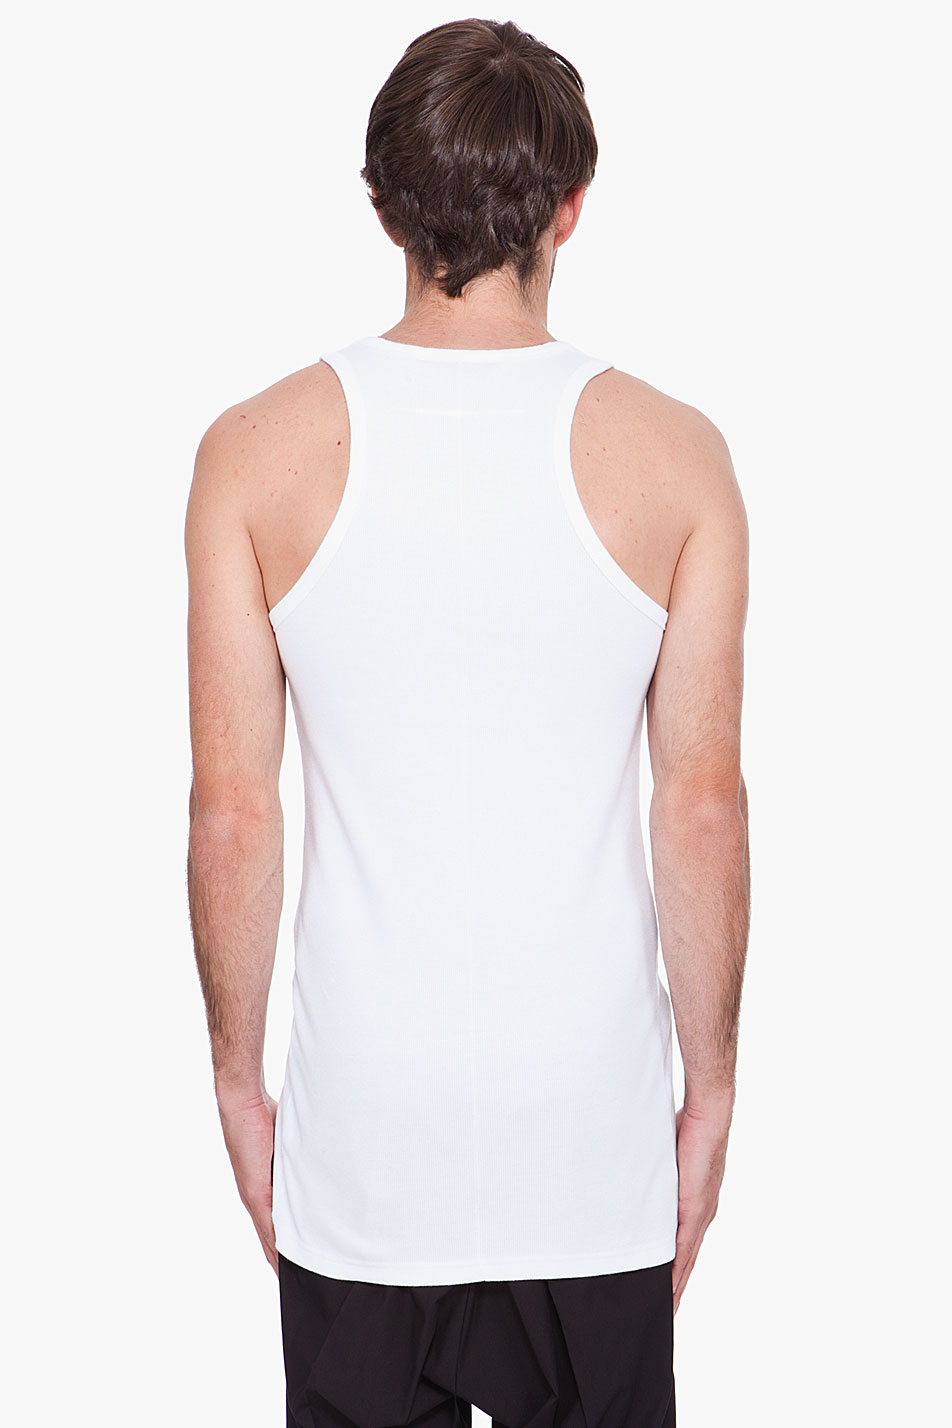 5528c7dad4c3a Lyst - Givenchy White Cutout Tank Top in White for Men